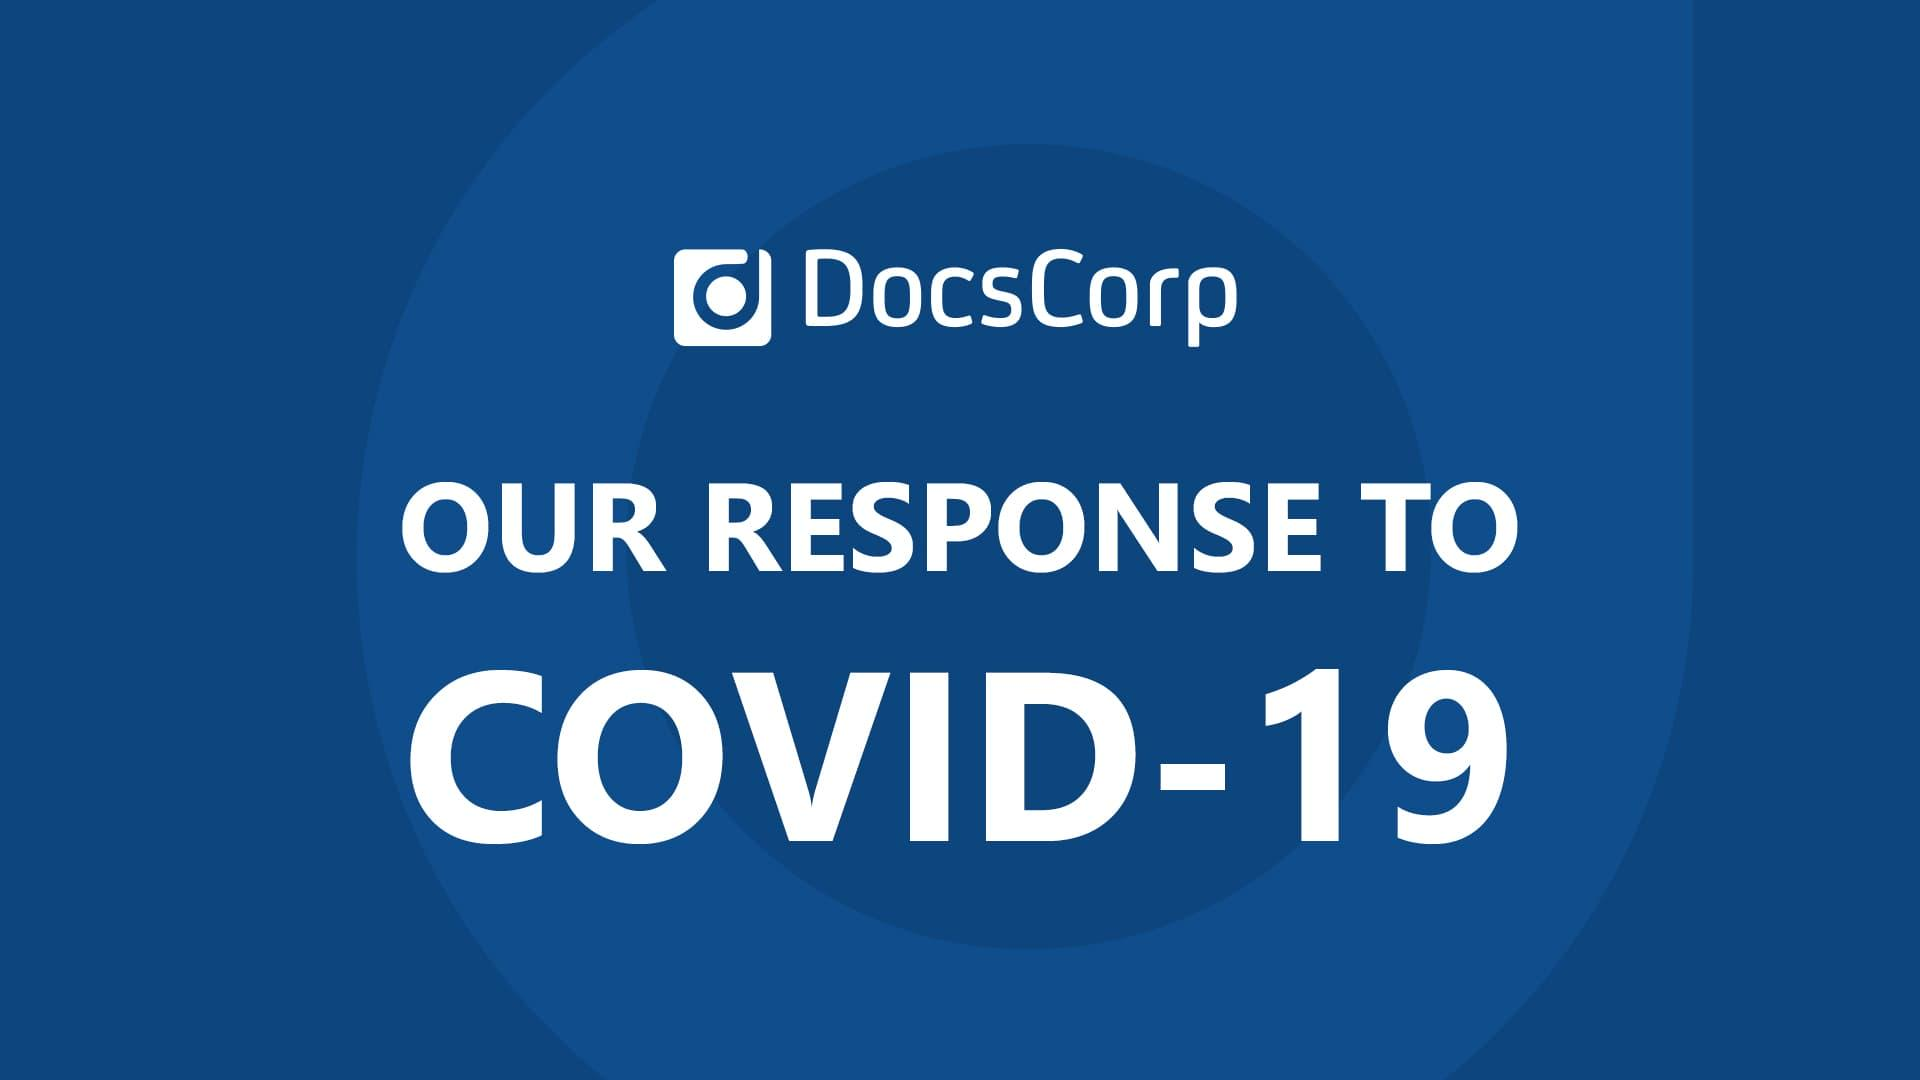 DocsCorp statement on COVID-19